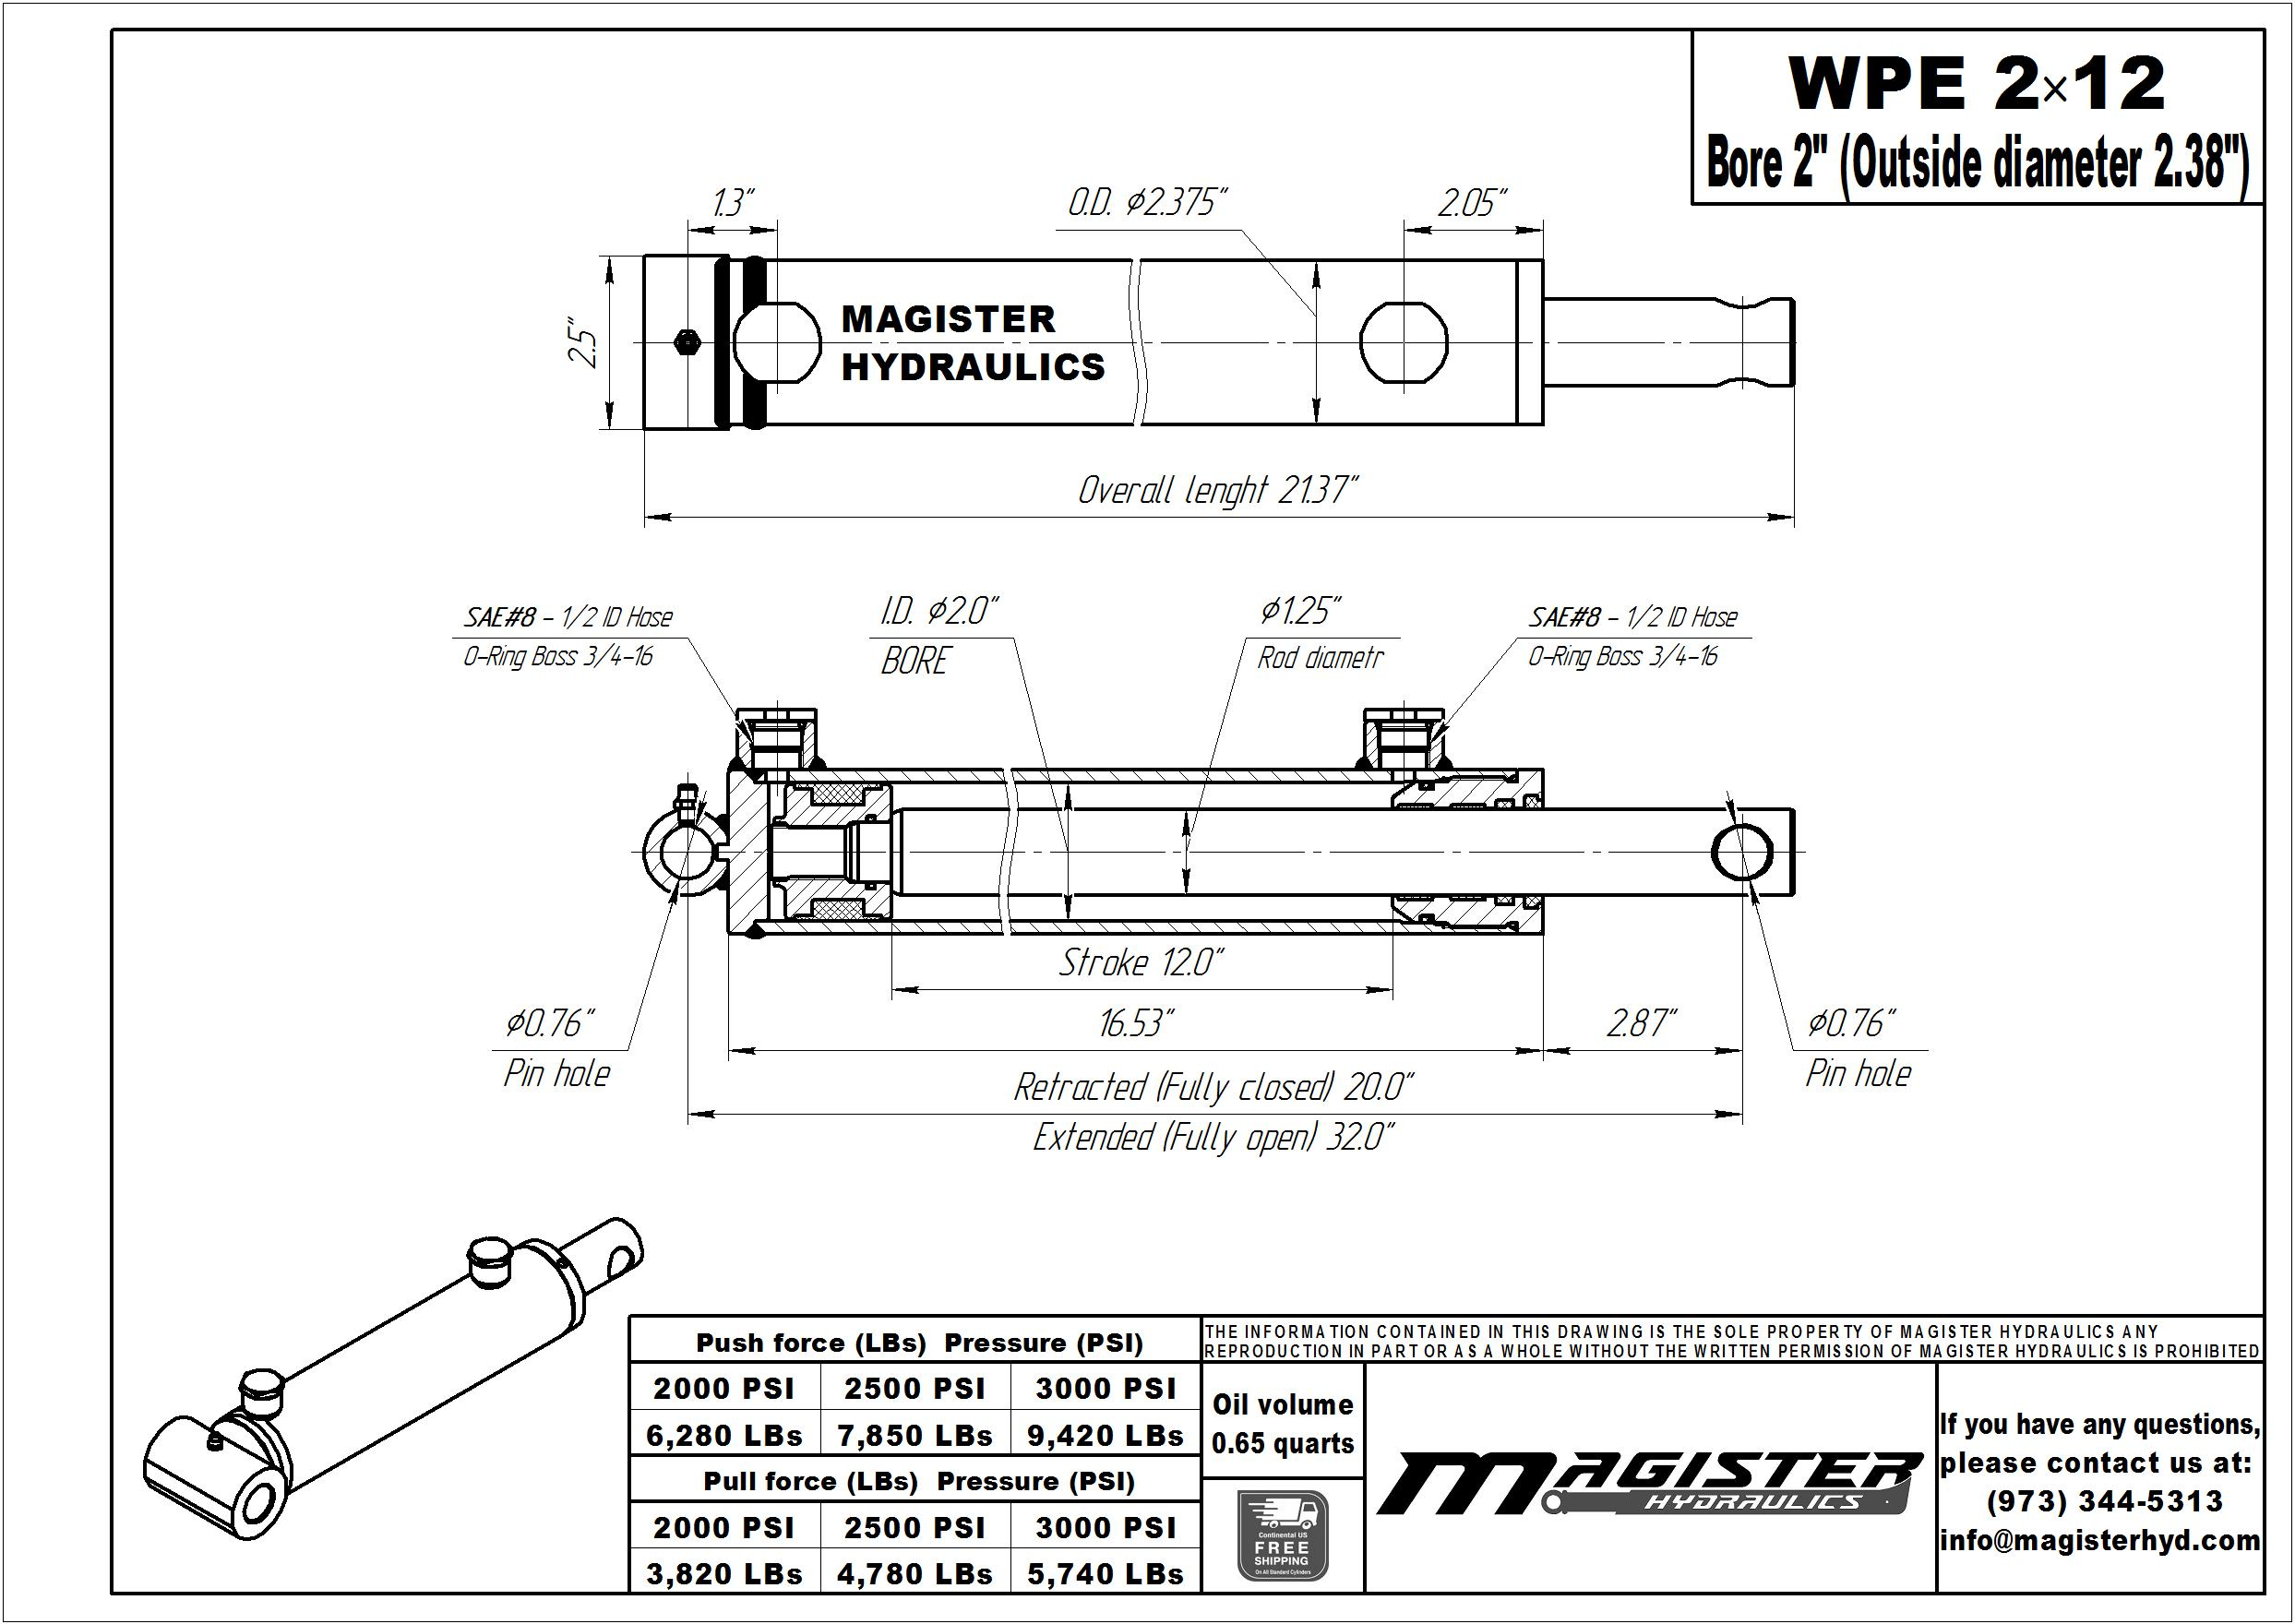 2 bore x 12 stroke hydraulic cylinder, welded pin eye double acting cylinder | Magister Hydraulics